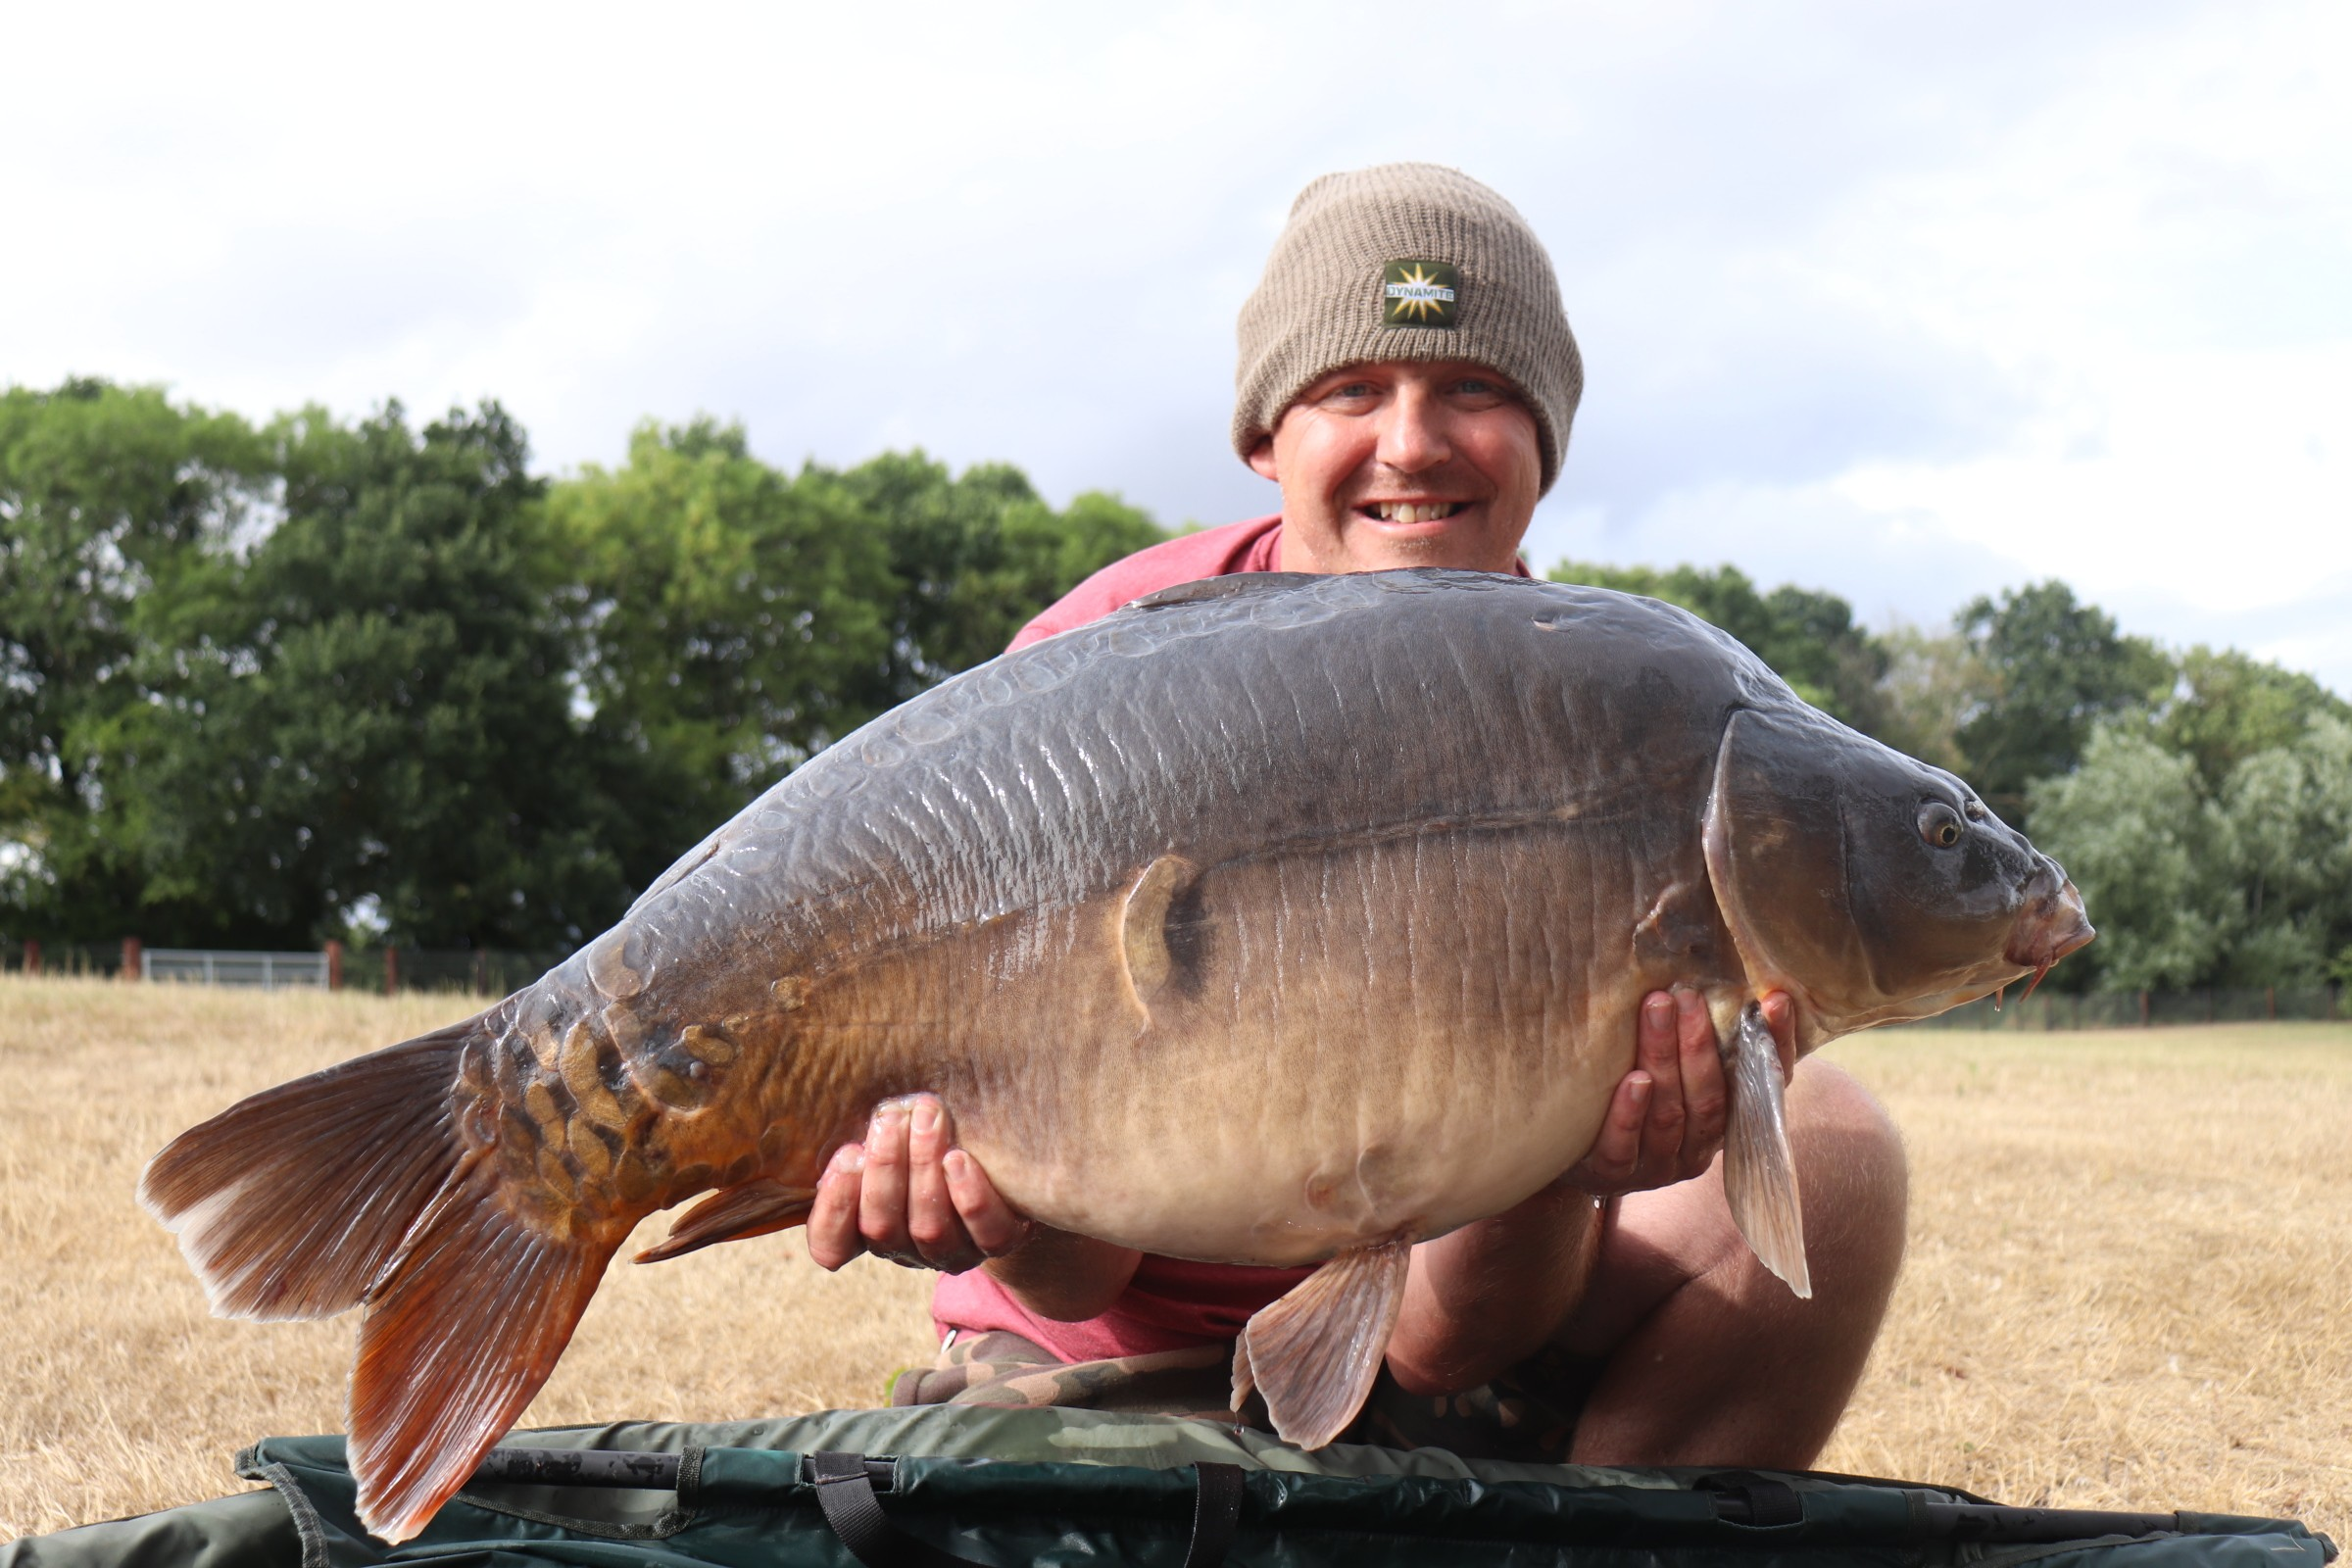 44lb 08oz 'Summers Mirror' caught on